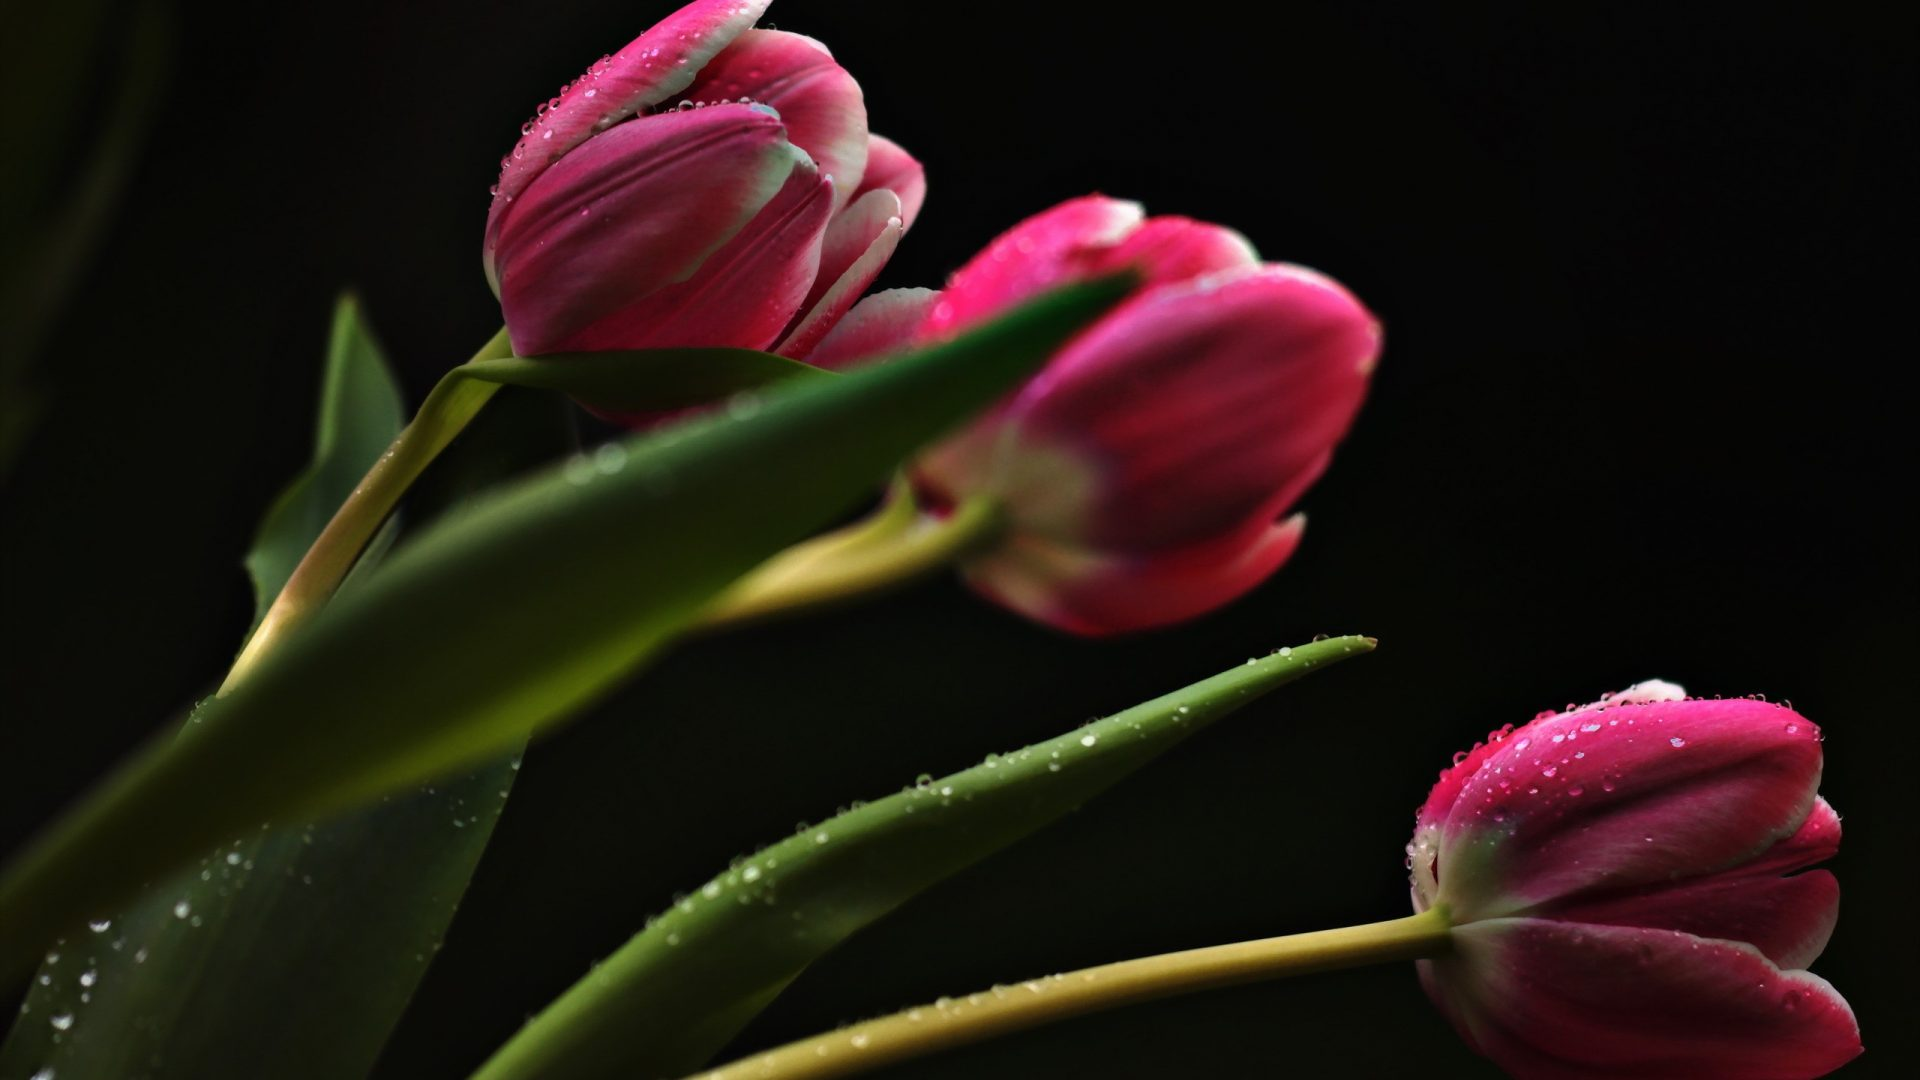 960x540 wallpapers Page 655: Orange Tulips Gorgeous Two Beautiful ...